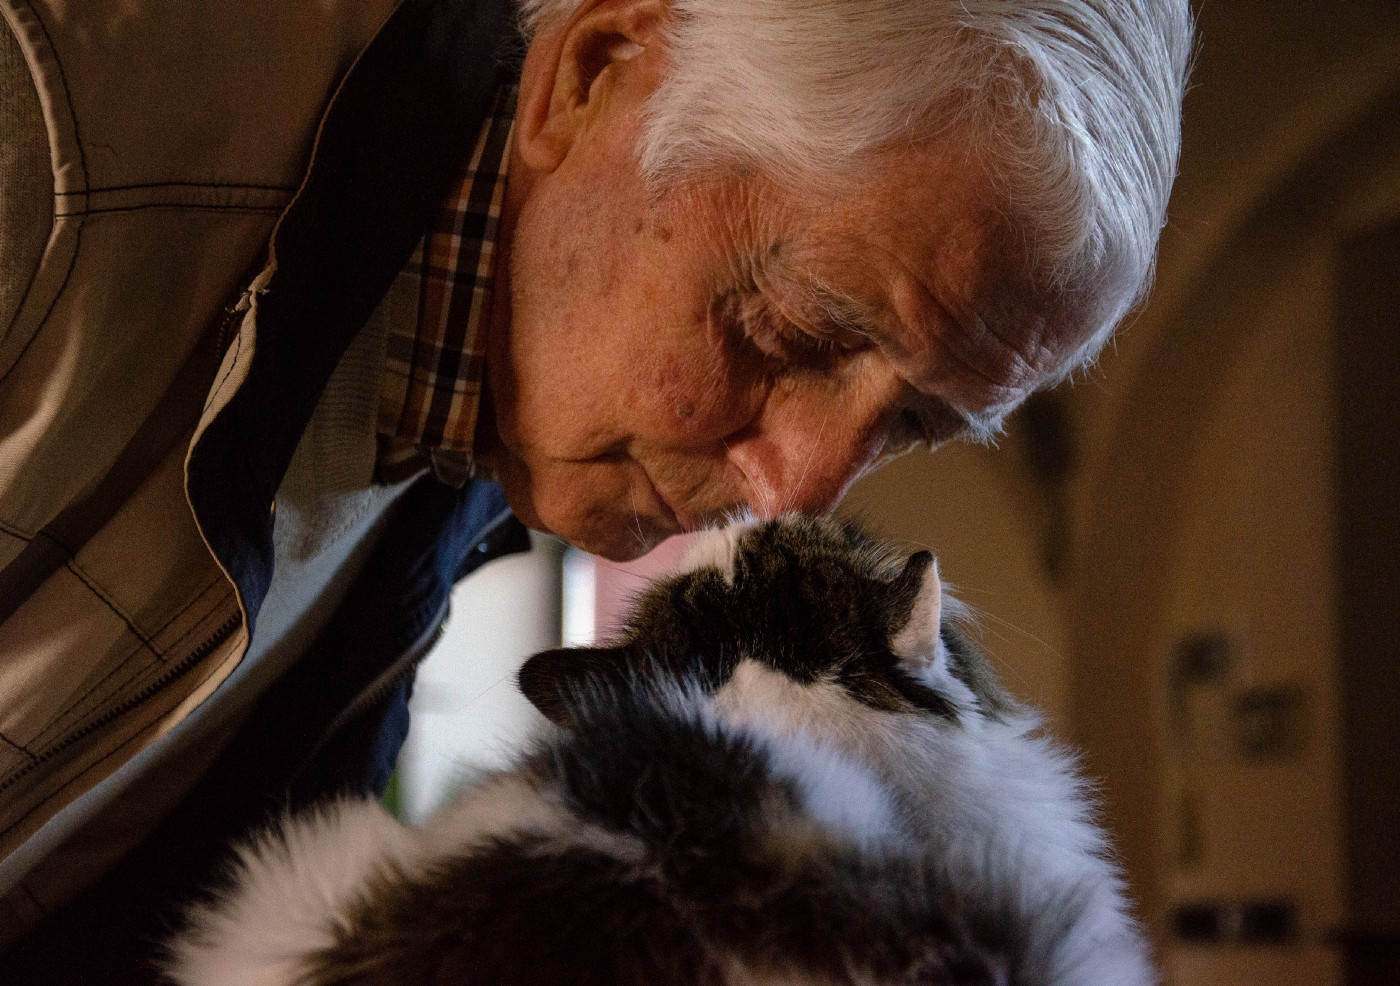 An older man rubs noses with a cat.